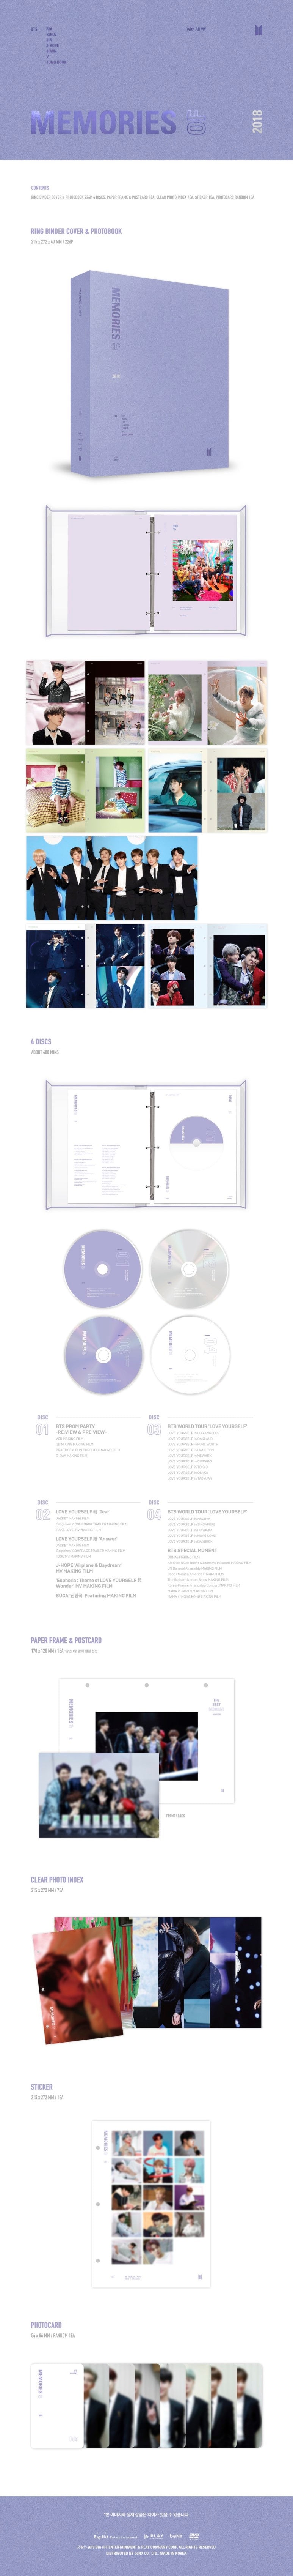 Memories of BTS 2018 DVD